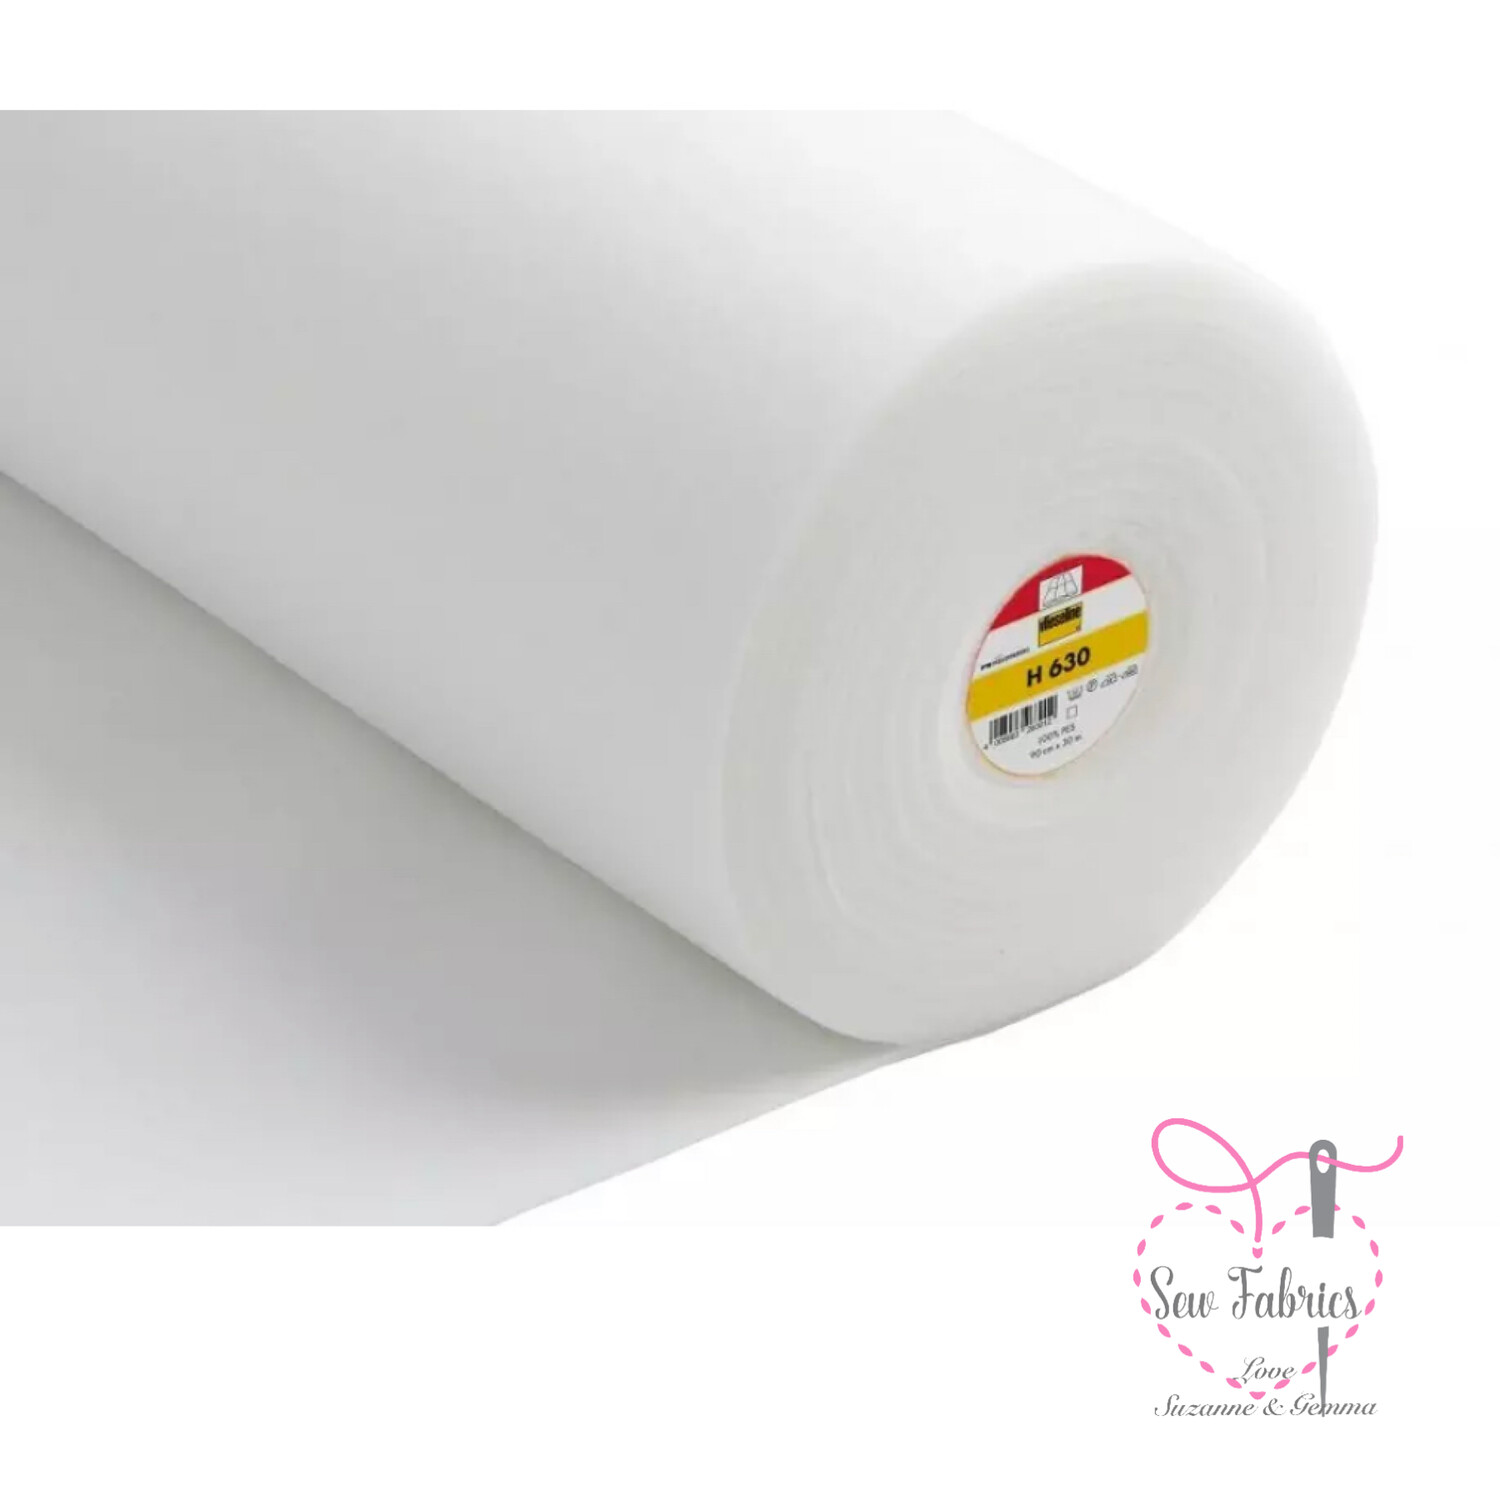 1m x White Low Loft Fusible Fleece Wadding / Batting, 90cm Wide by Vilene Vlieseline, for applique and clothing applications.